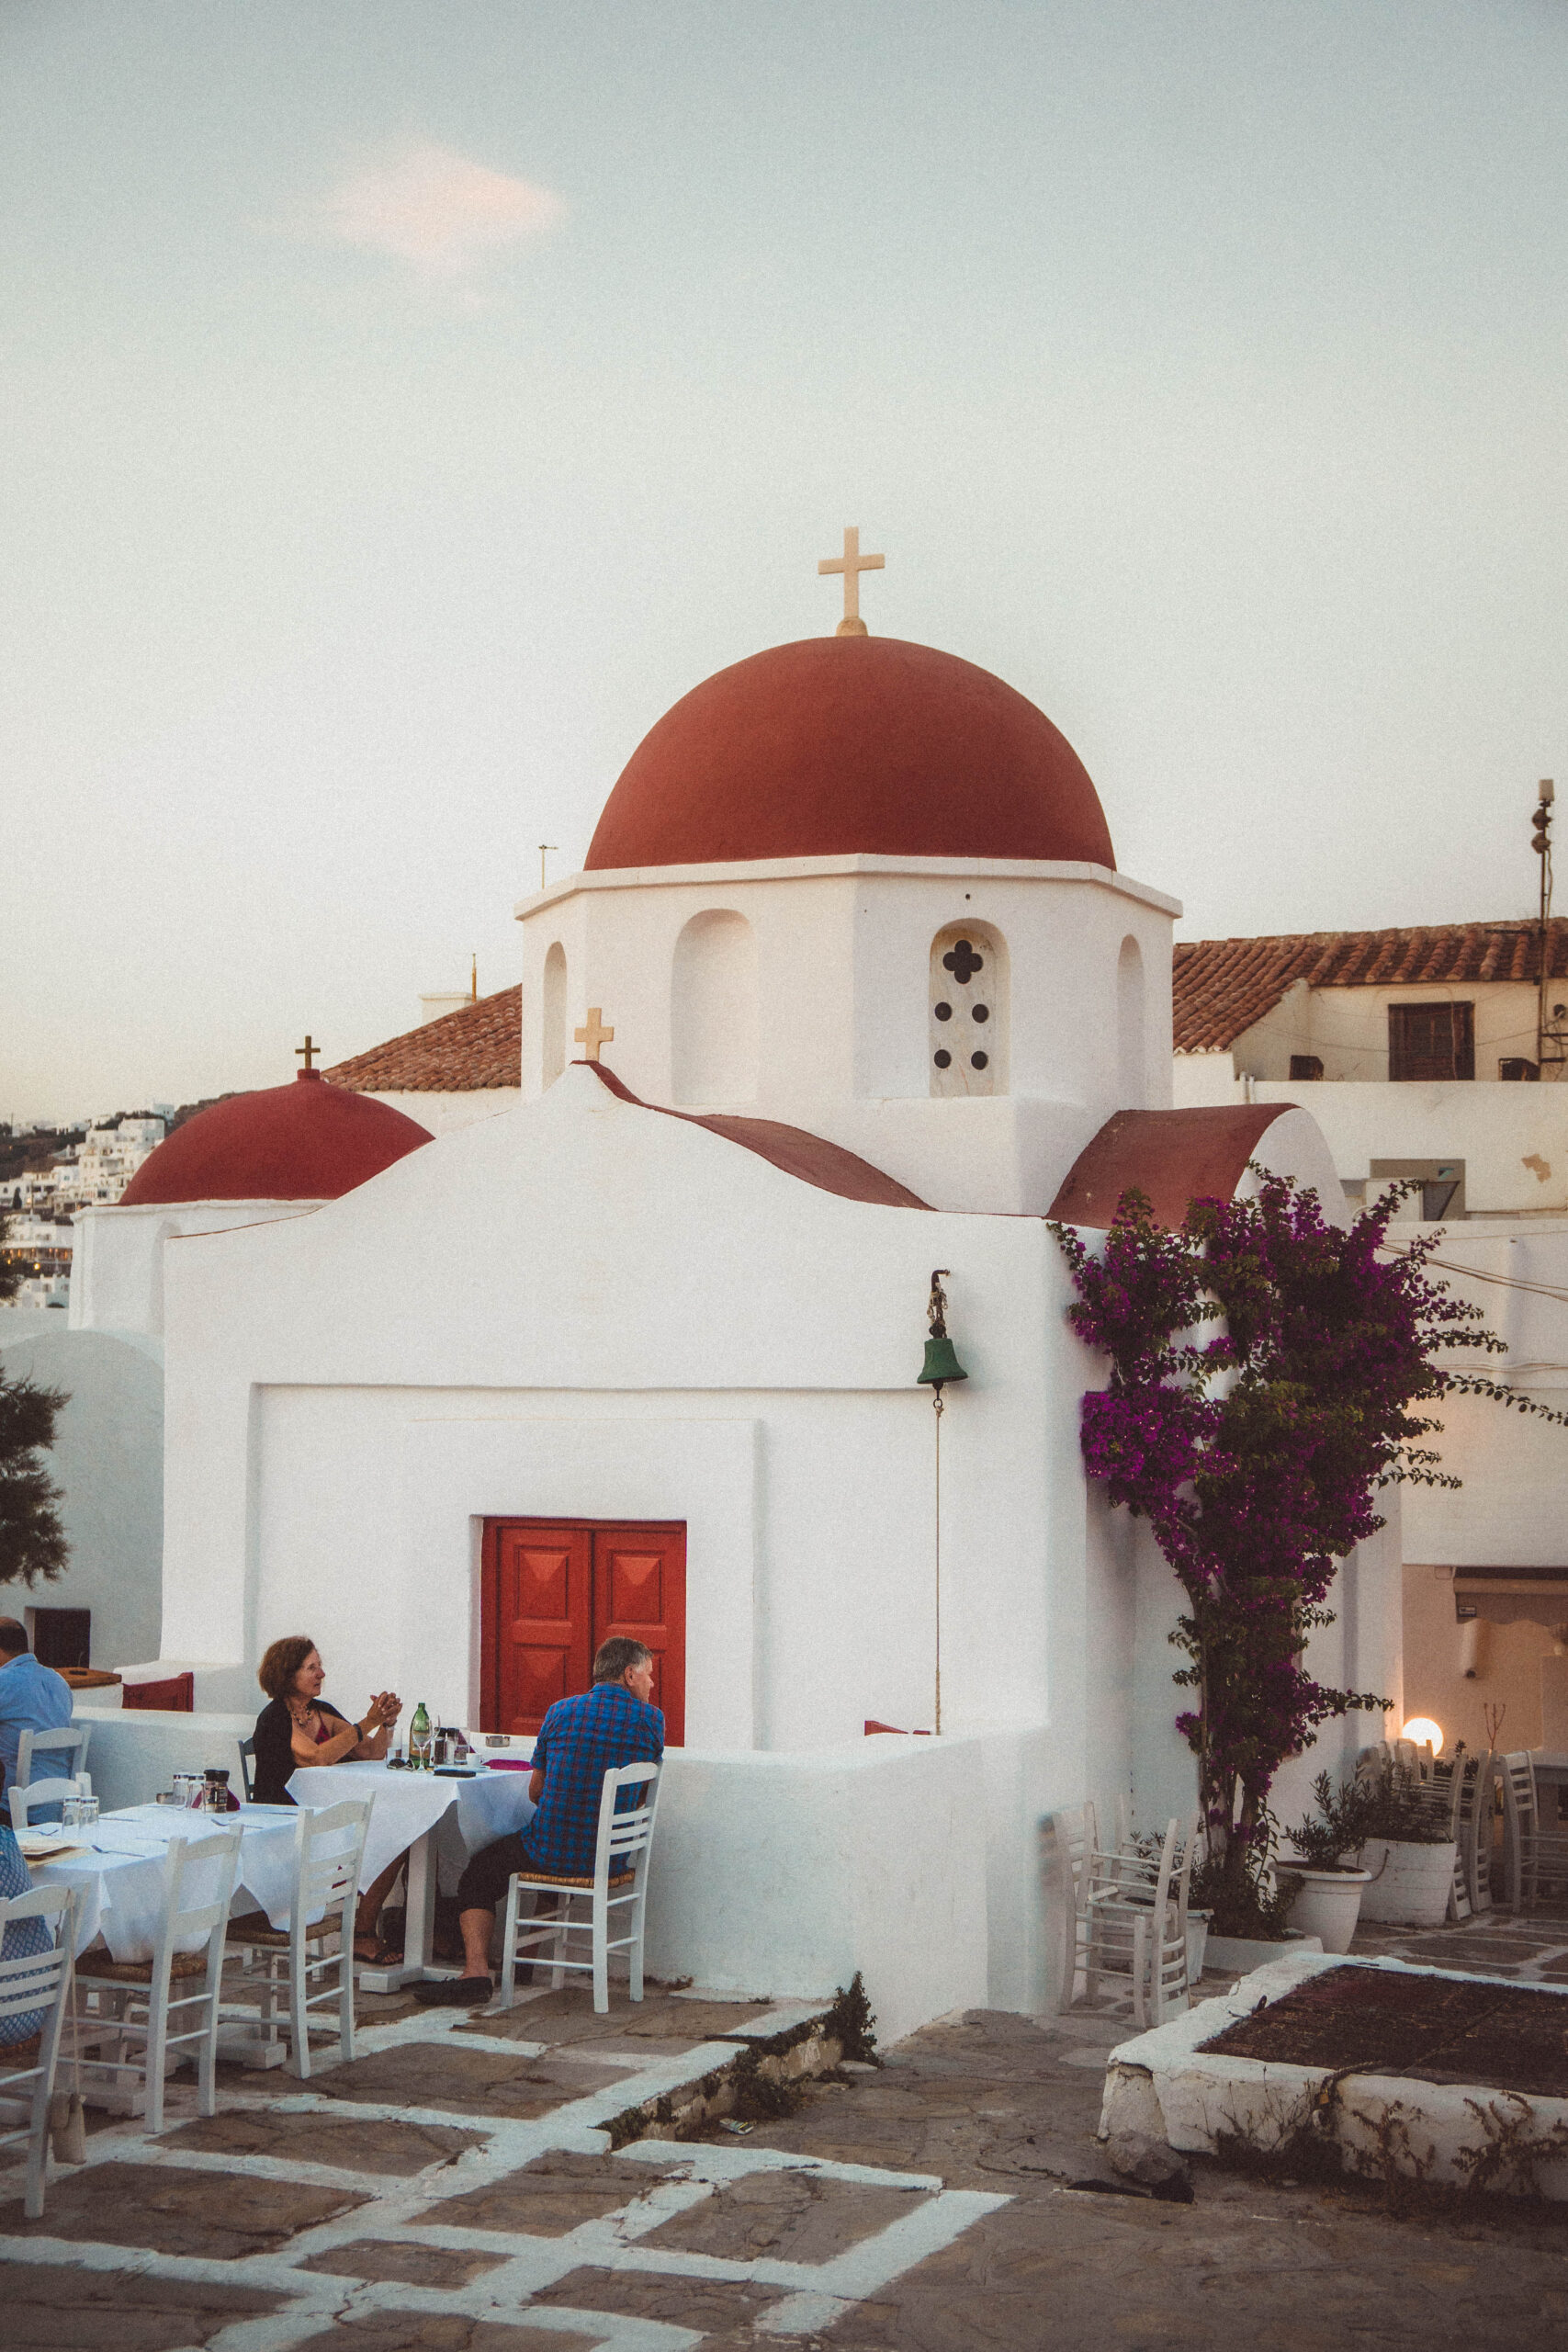 50+ Greece Quotes: Sayings That Will Inspire a Visit